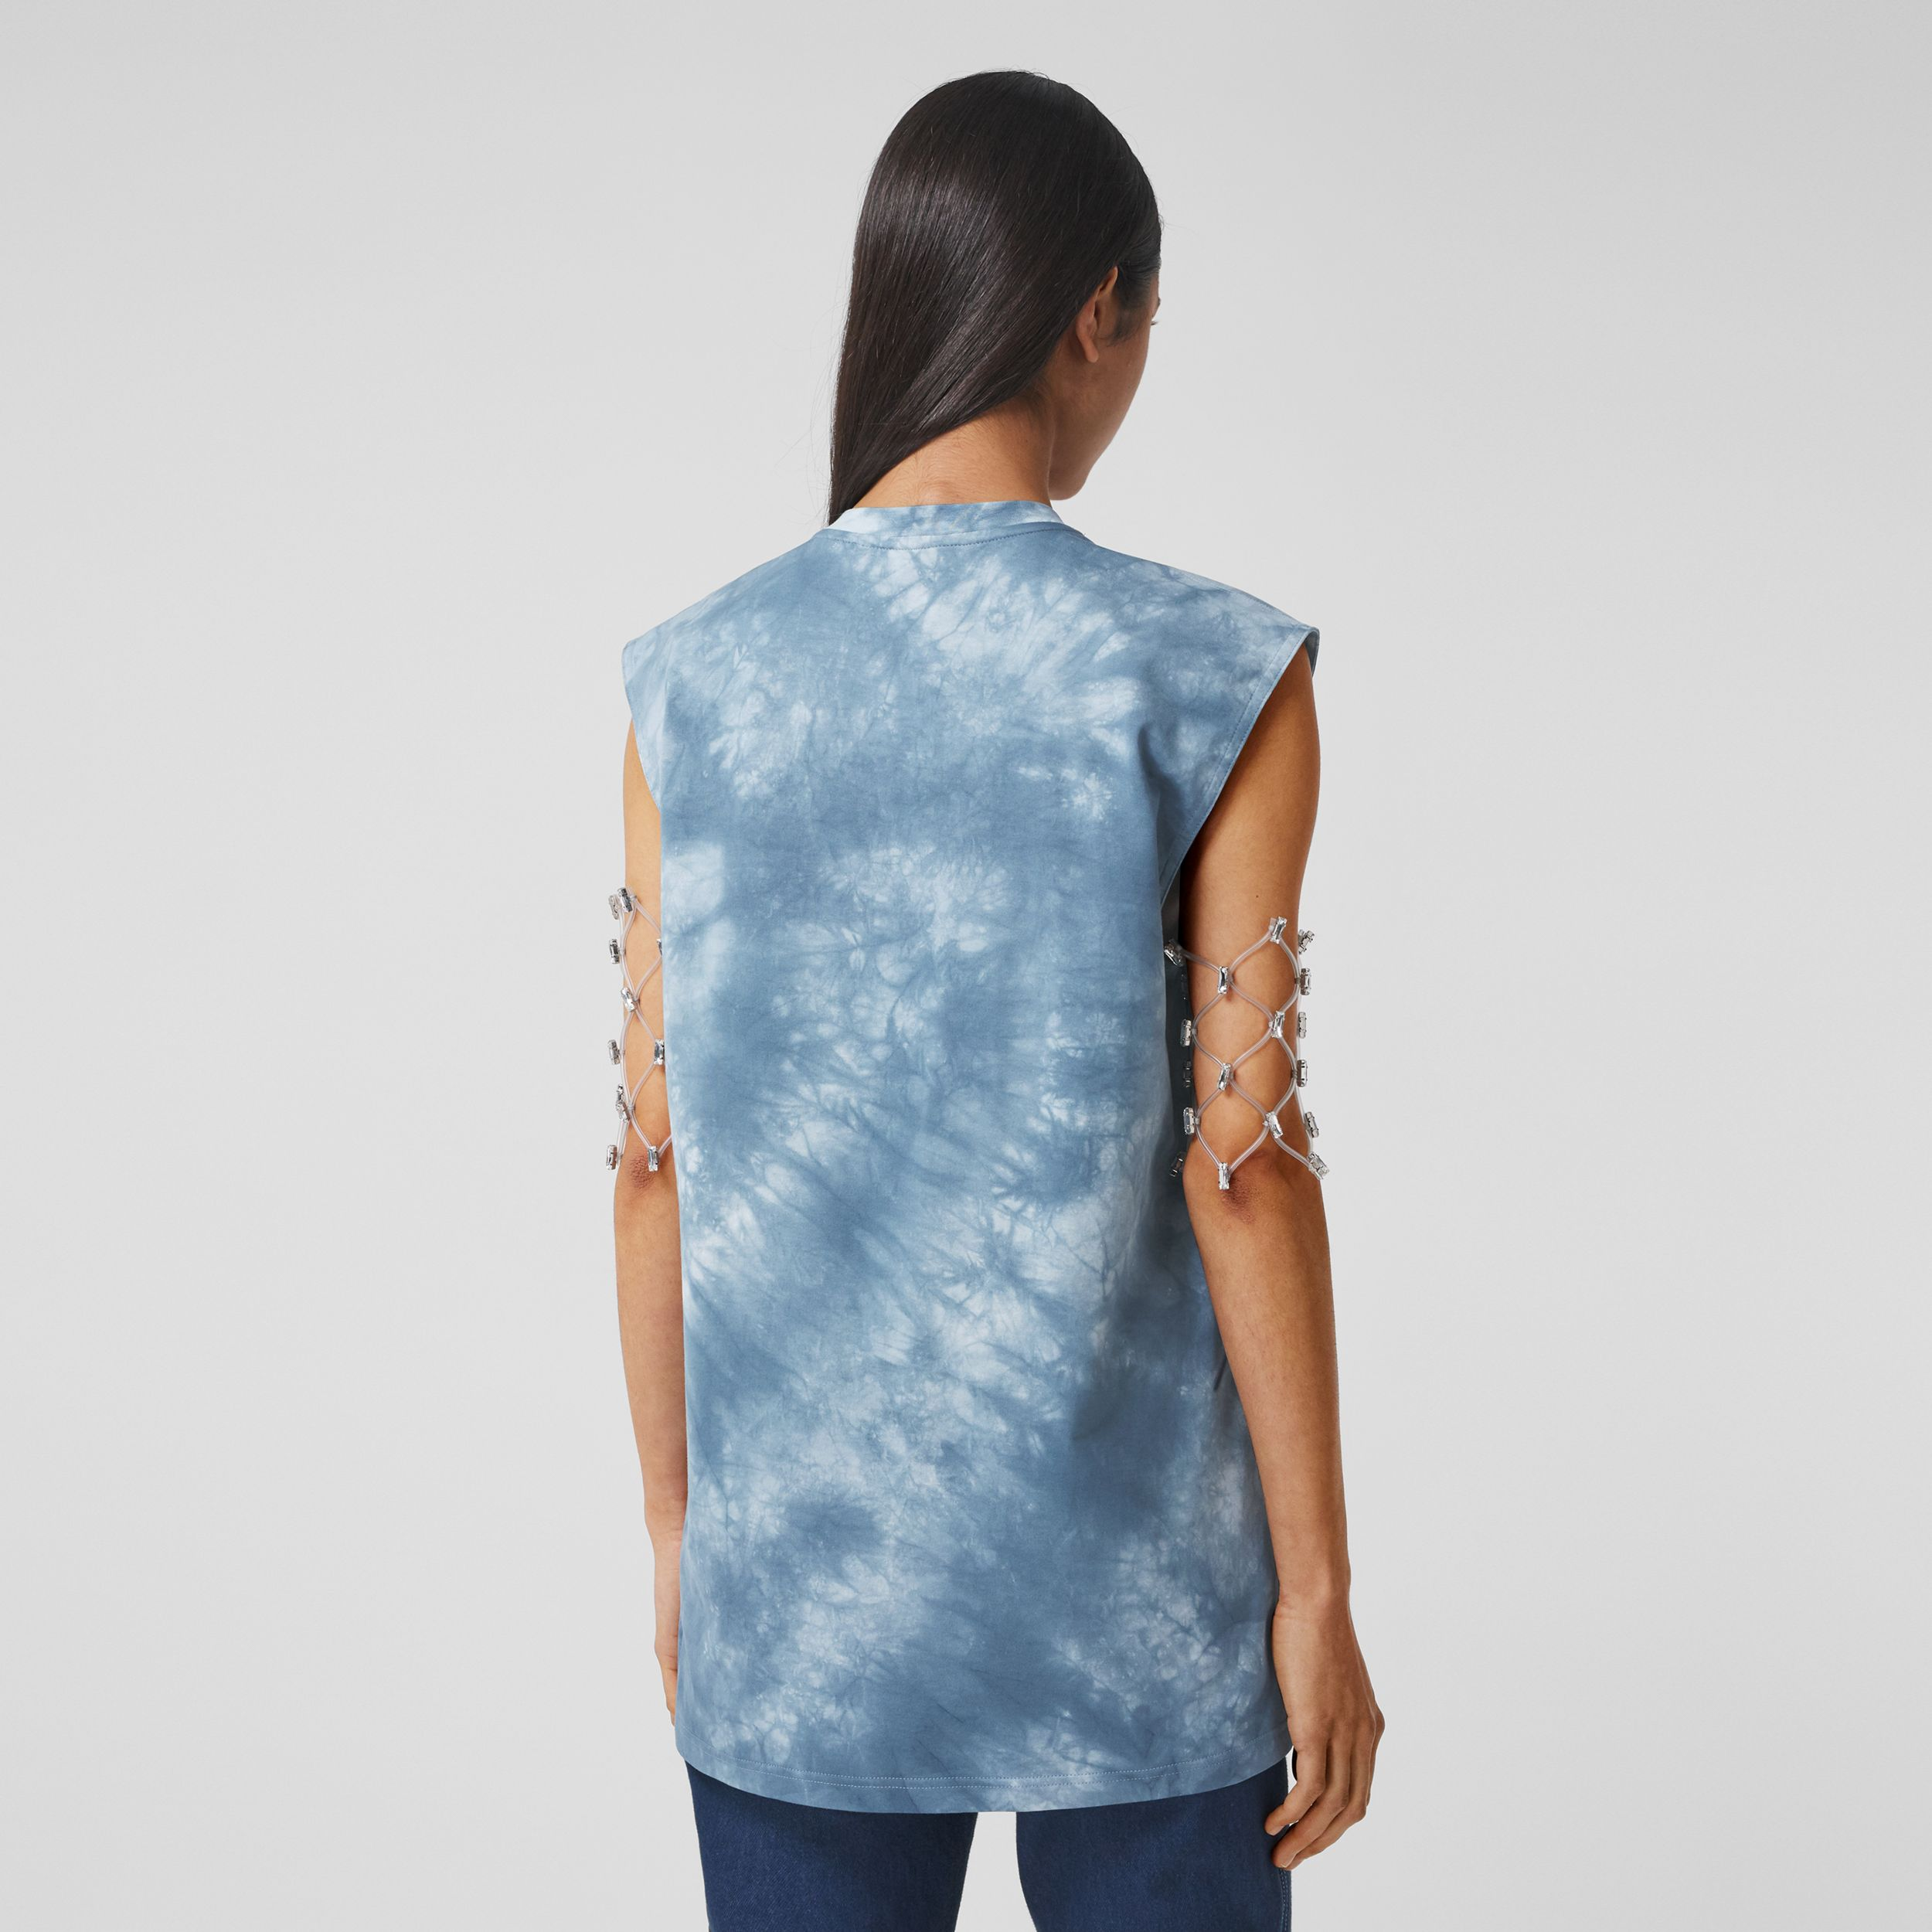 Shark Print Cotton Sleeveless Top in Ink Blue - Women | Burberry - 3